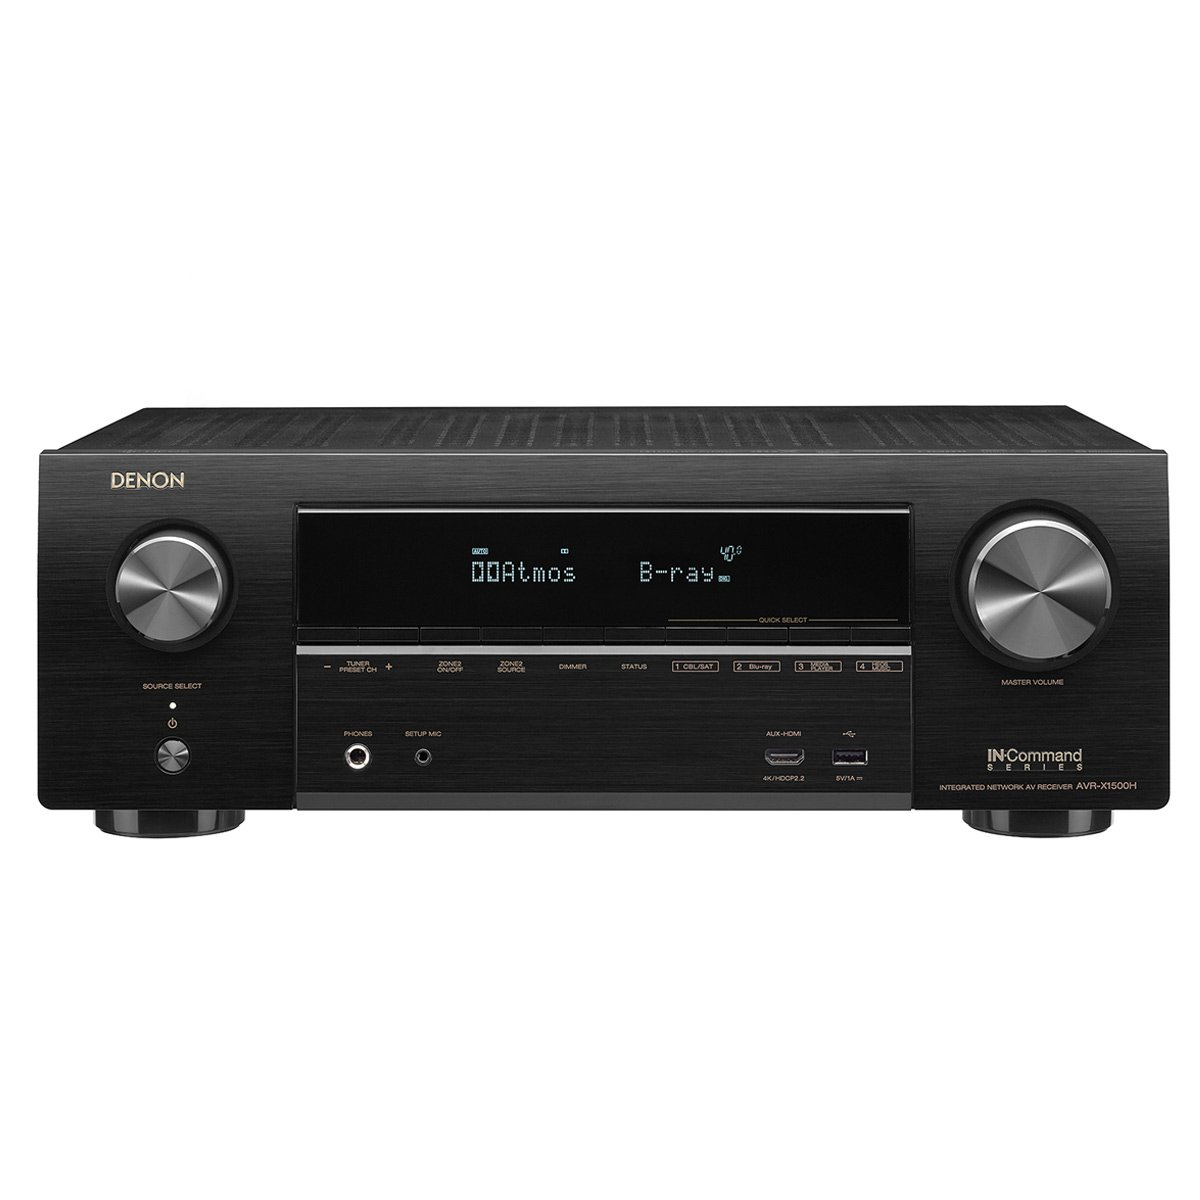 Denon AVR-X1500 Receiver 4K Ultra HD Video Home Theater Dolby Surround Sound (Renewed)